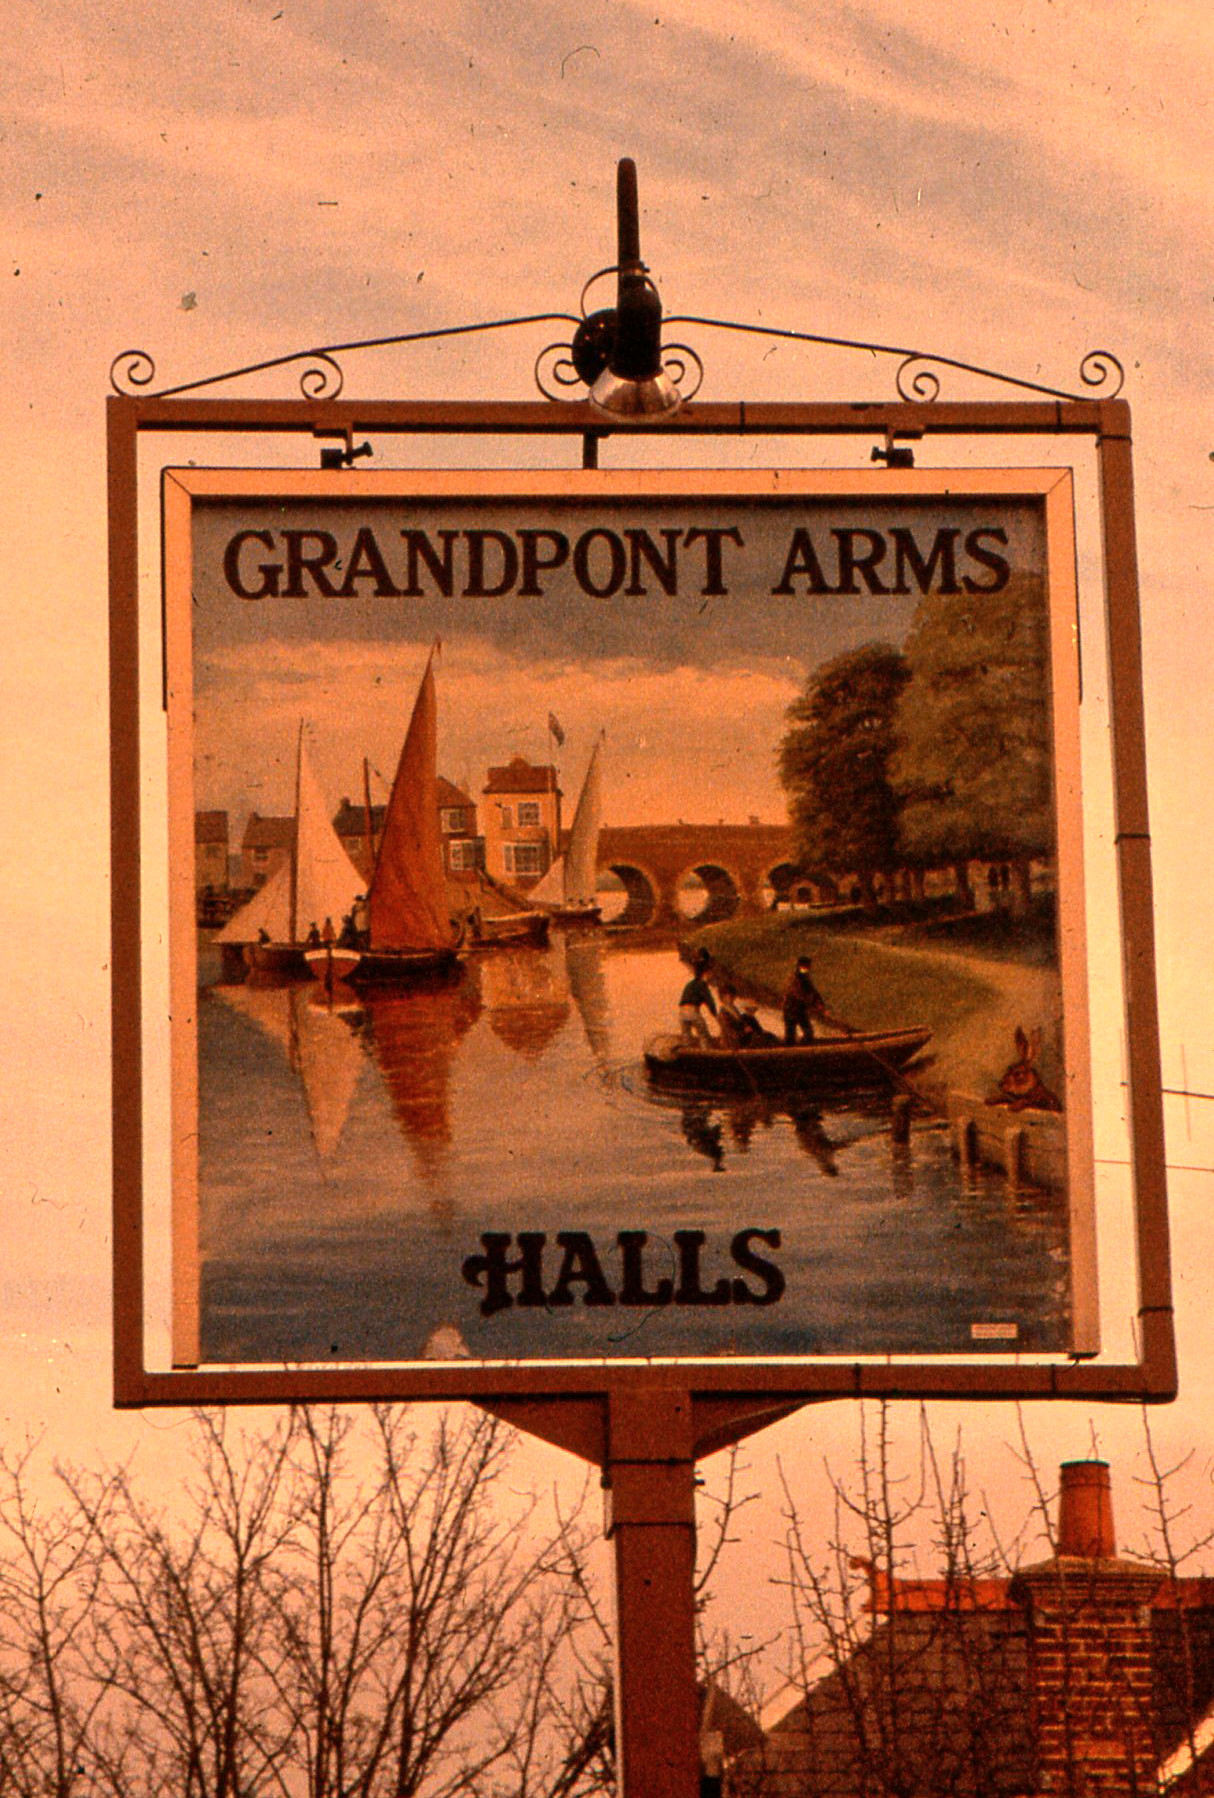 The Grandpont Arms